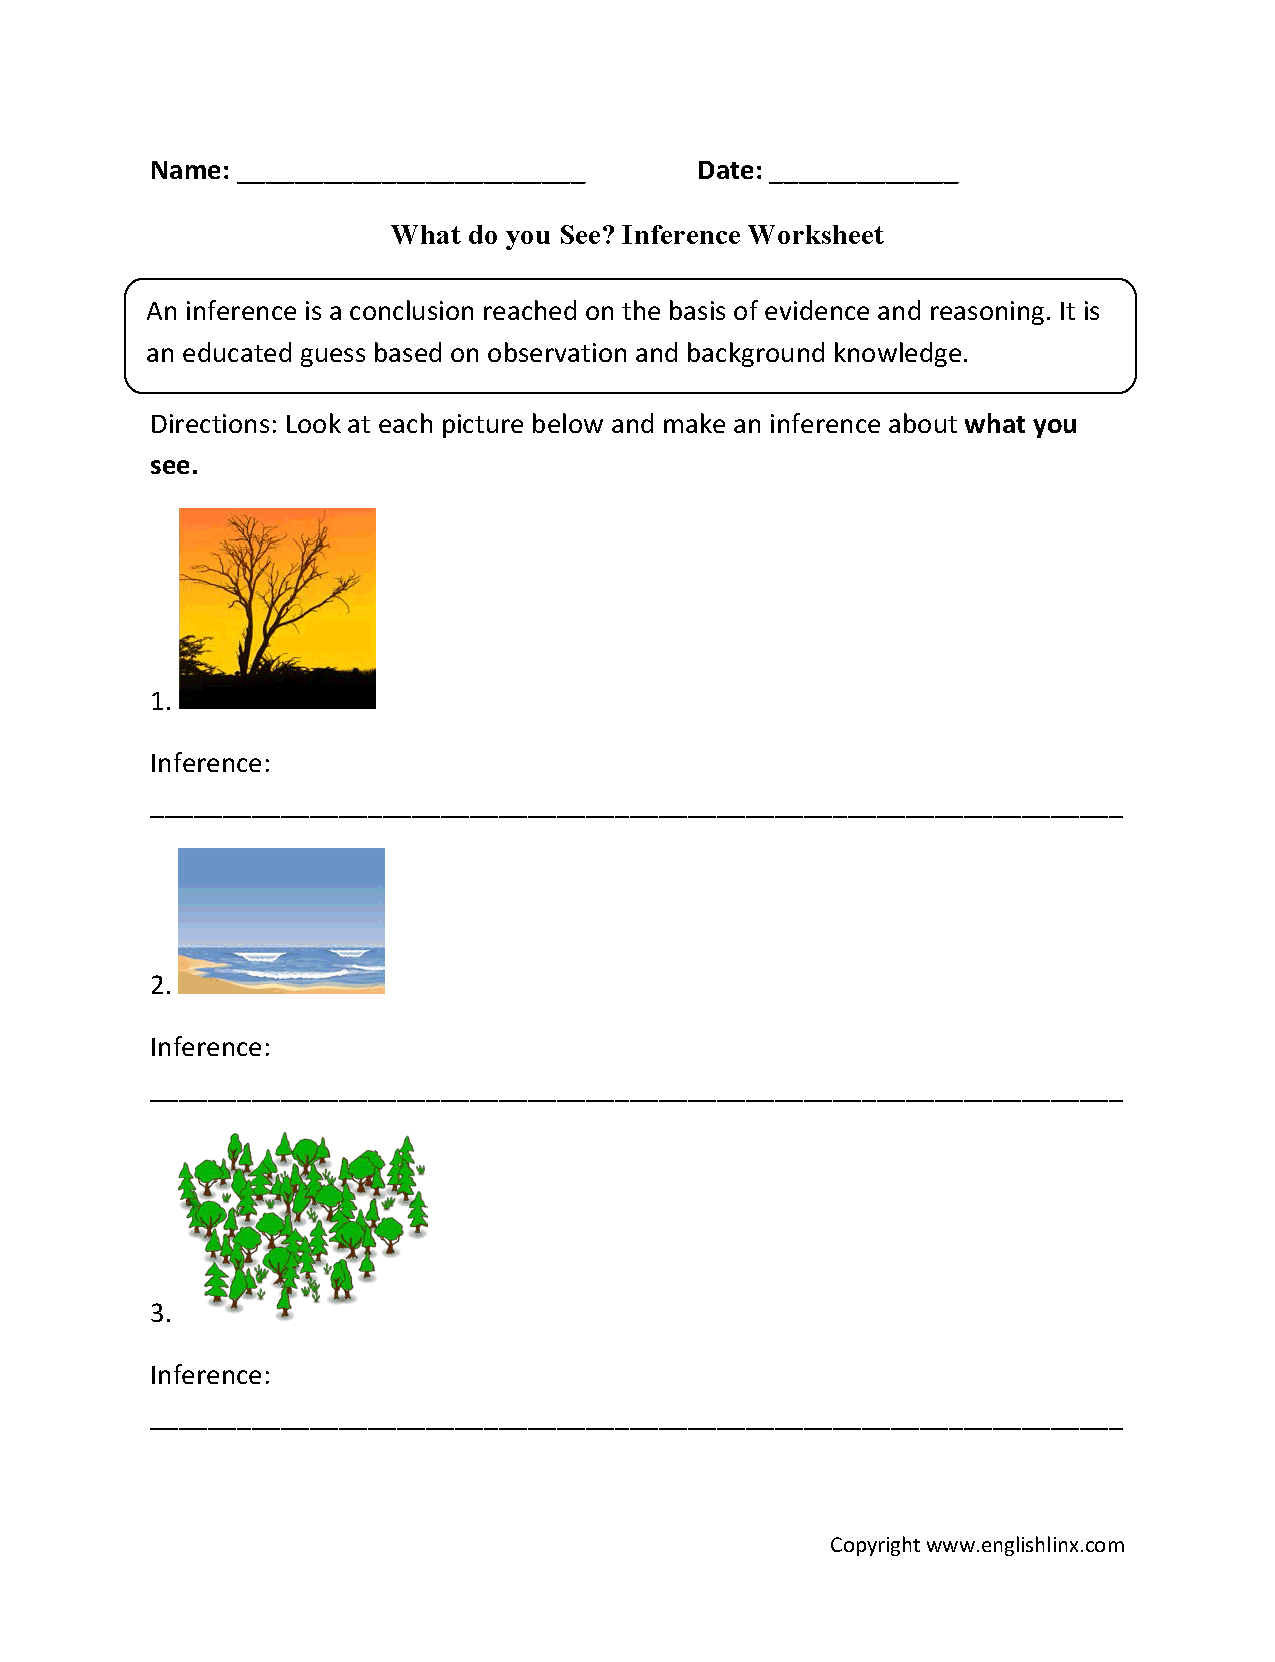 What do you See? Inference Worksheets   Reading worksheets [ 1662 x 1275 Pixel ]